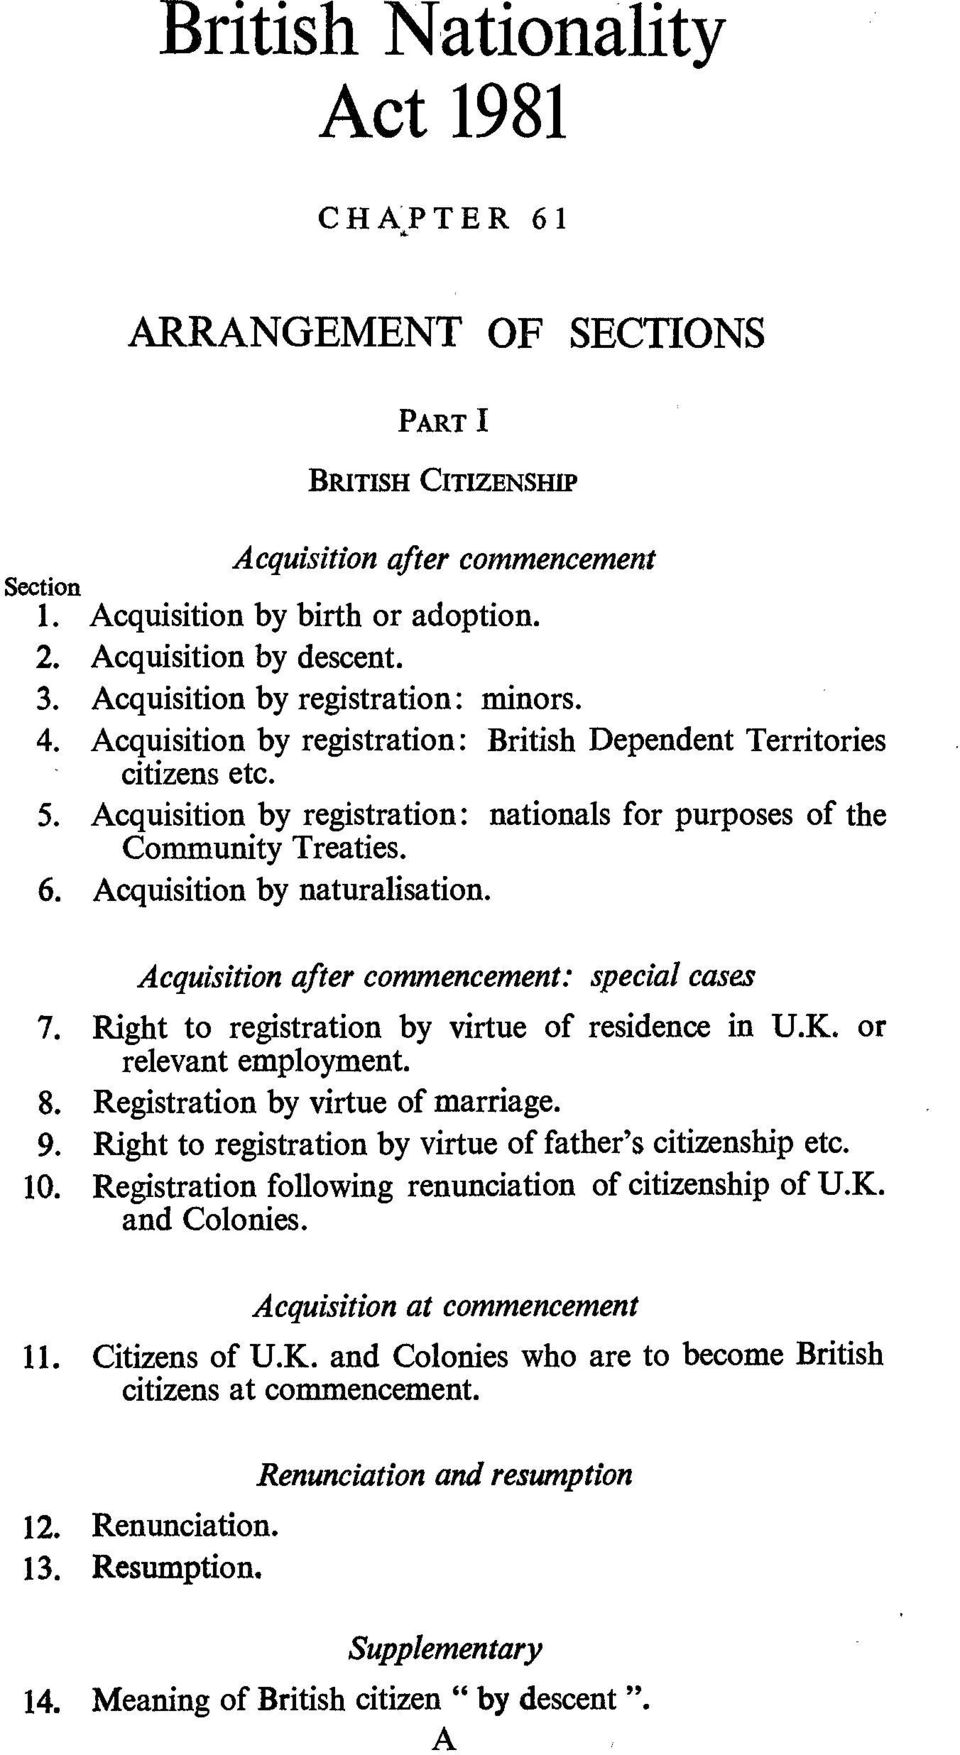 Acquisition by naturalisation. Acquisition after commencement: special cases 7. Right to registration by virtue of residence in U.K. or relevant employment. 8. Registration by virtue of marriage. 9.